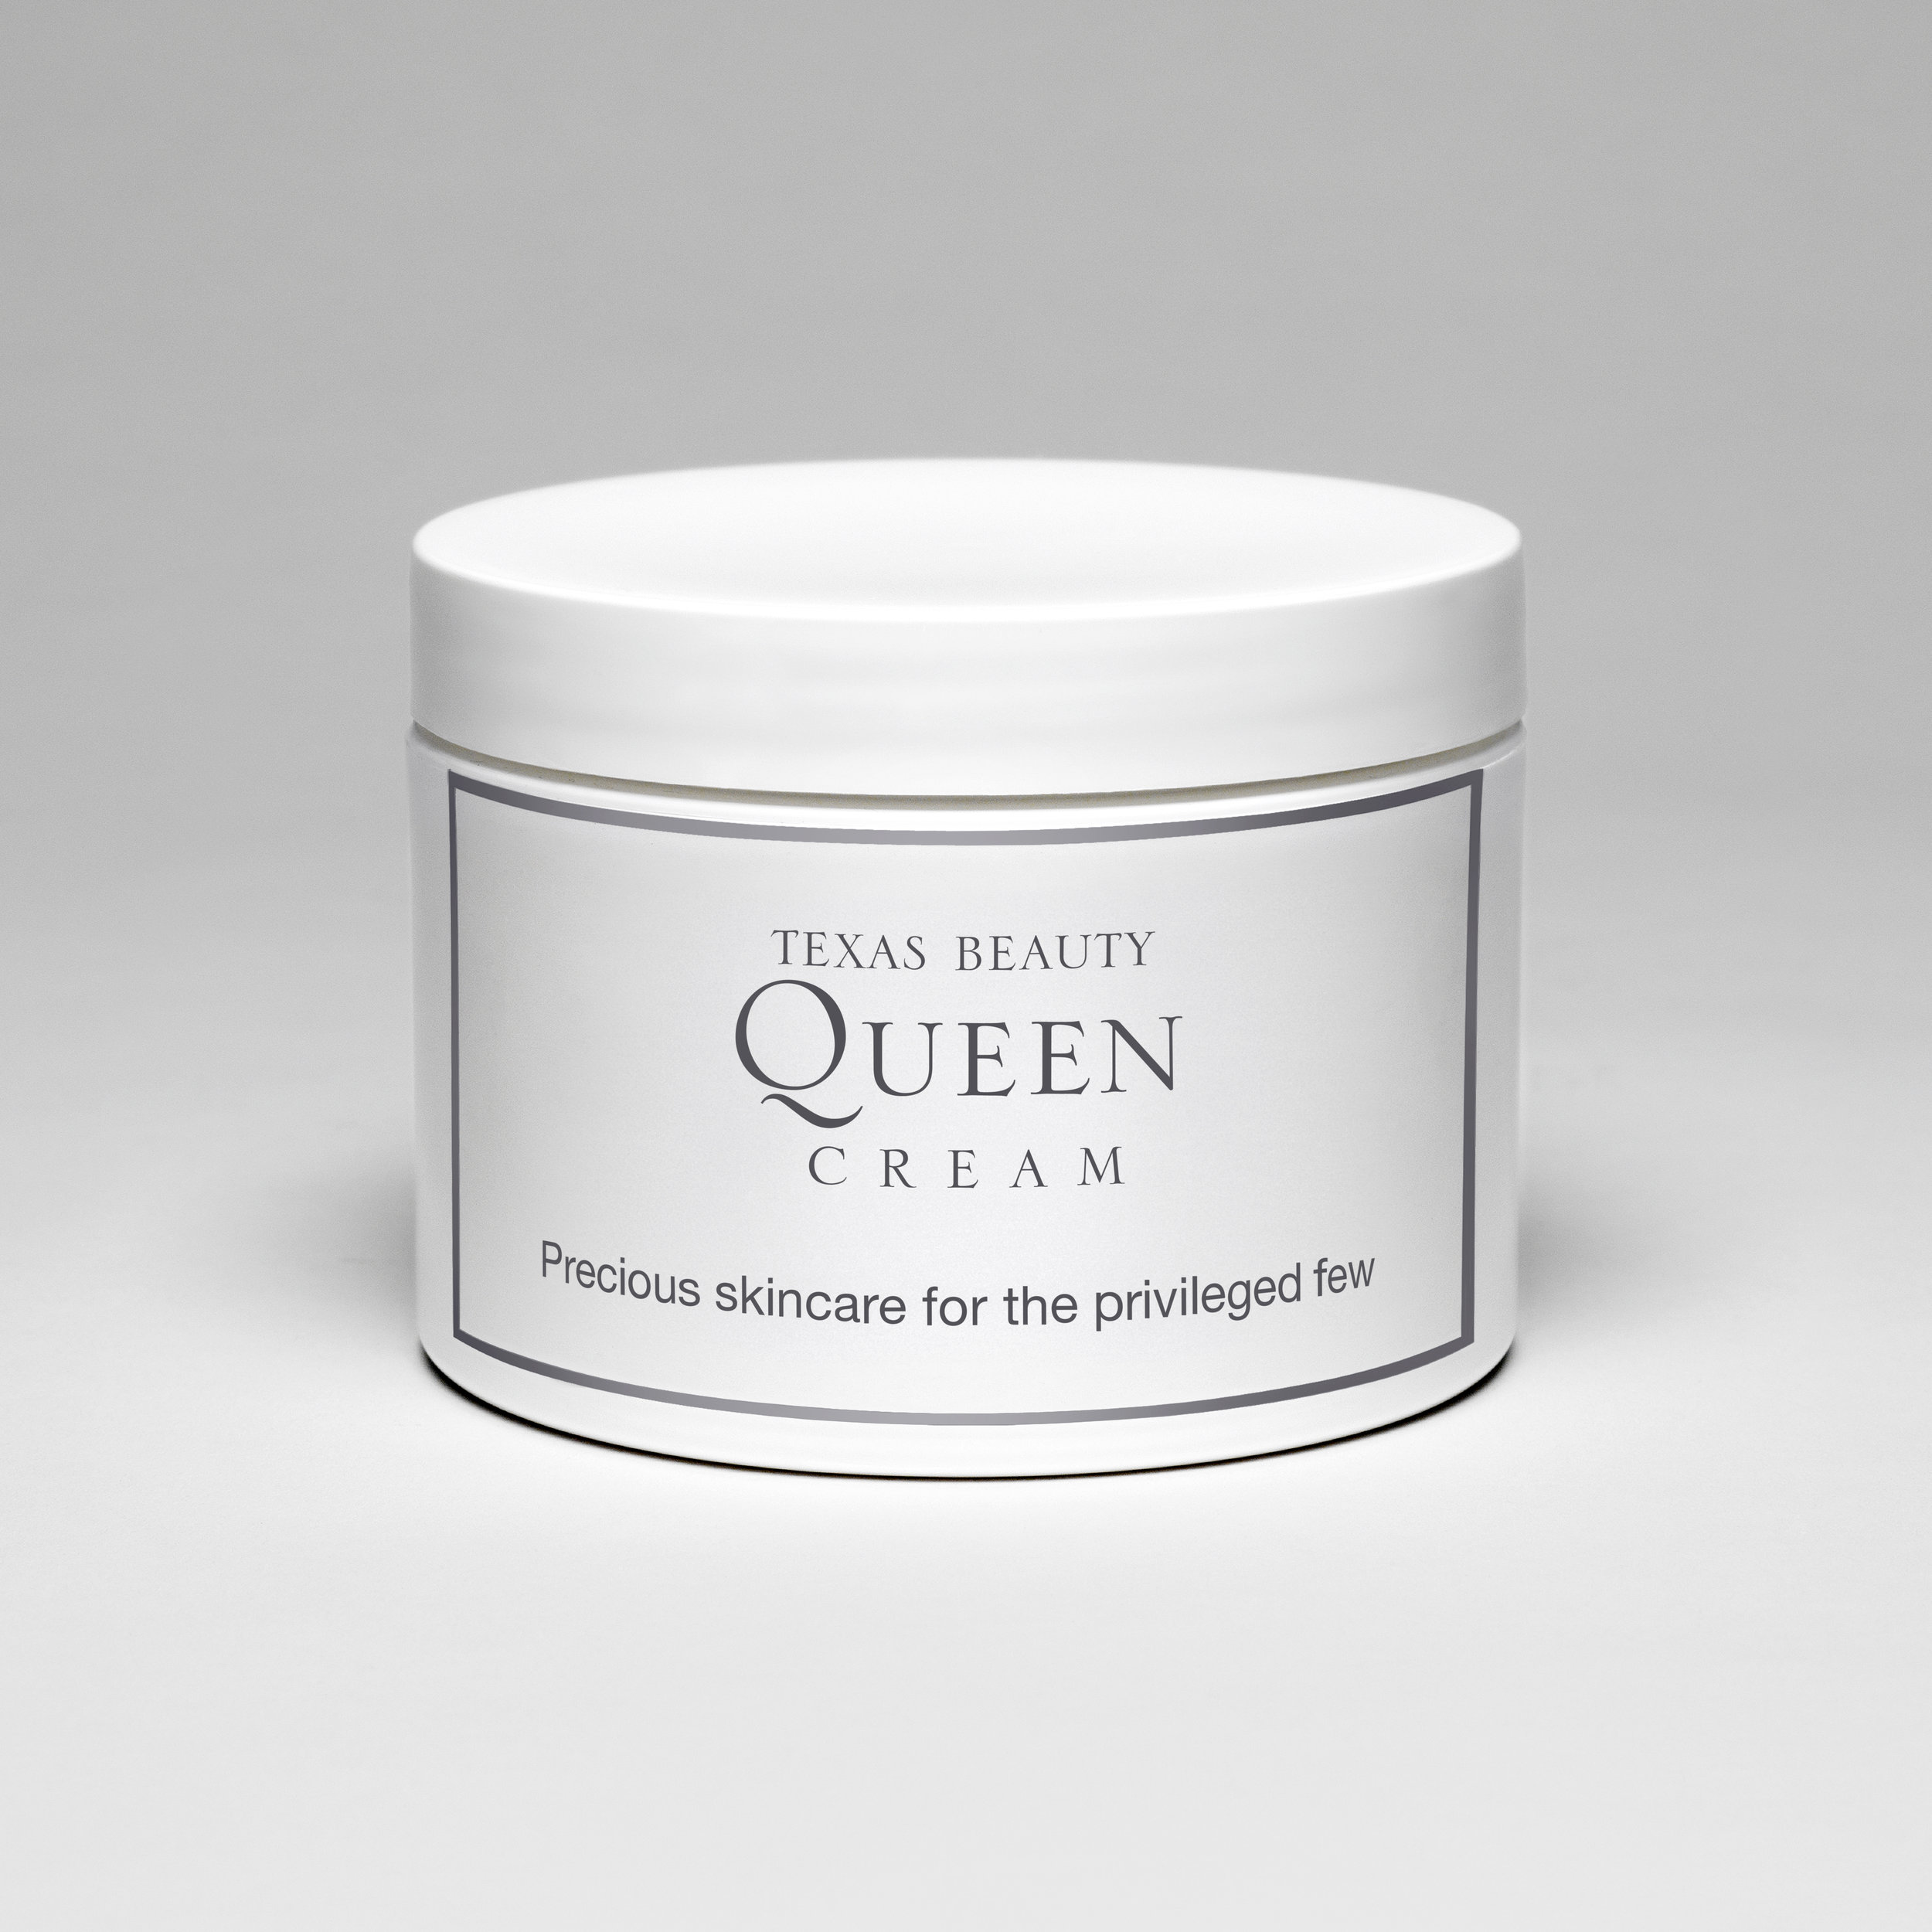 Texas Beauty Queen Cream (Precious skincare for the privileged few) , 2009  Archival photographic print  12 x 12 inches